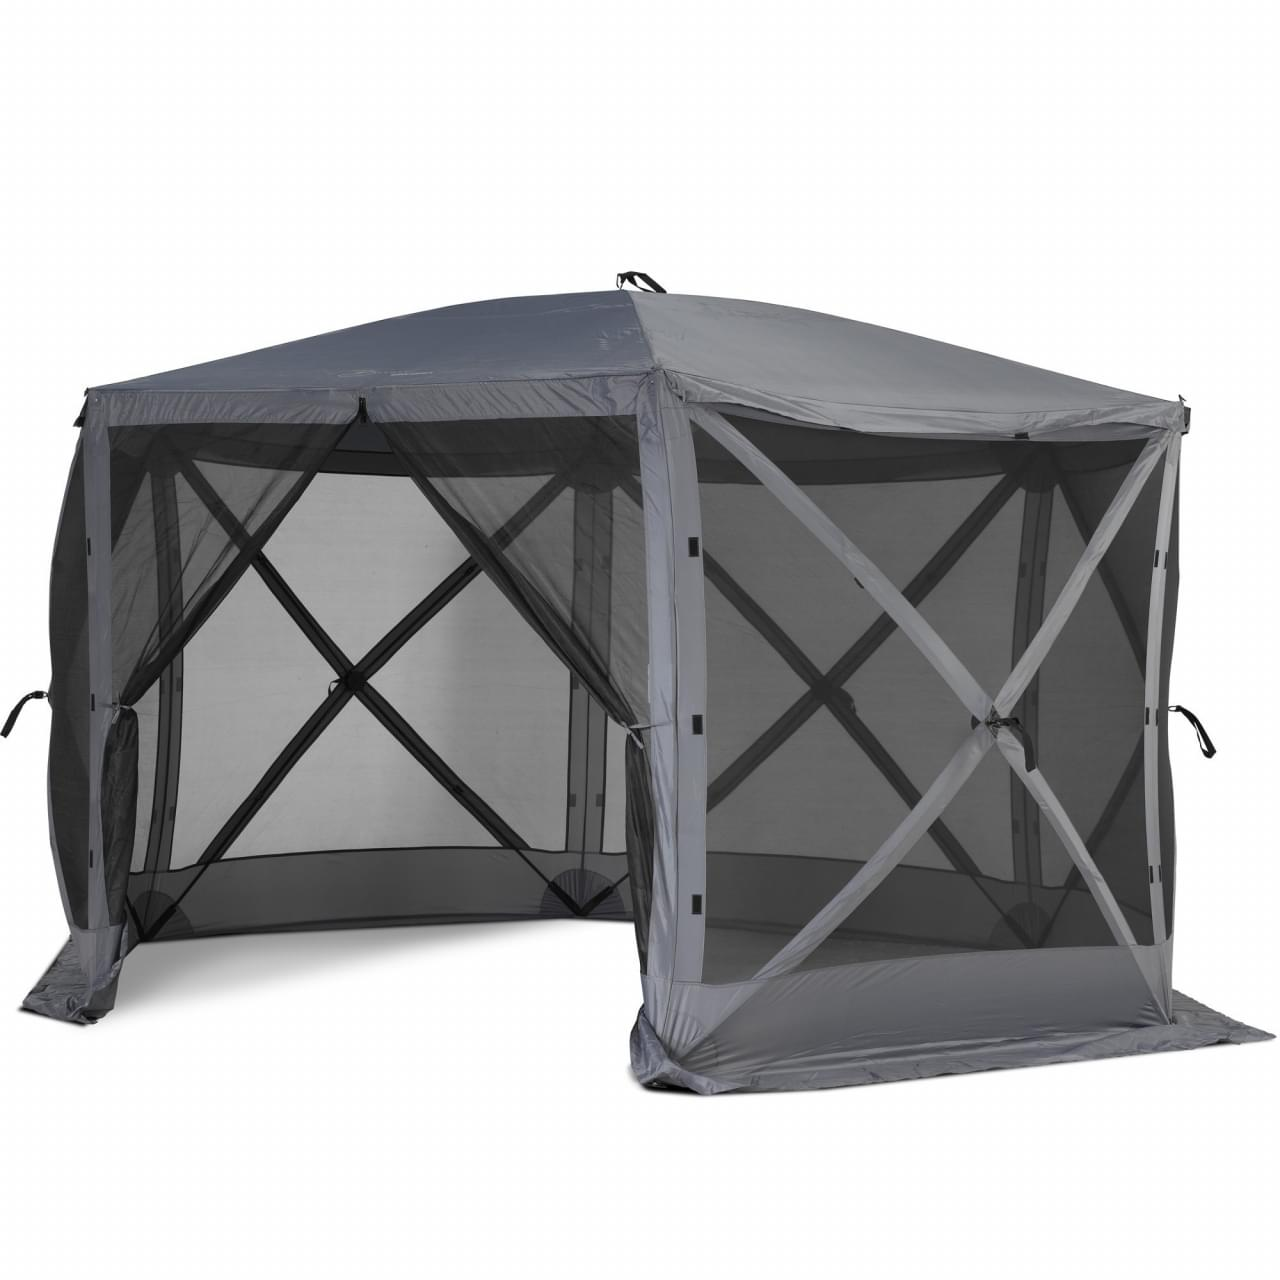 Bardani Quick Lodge 6 Partytent - Grijs